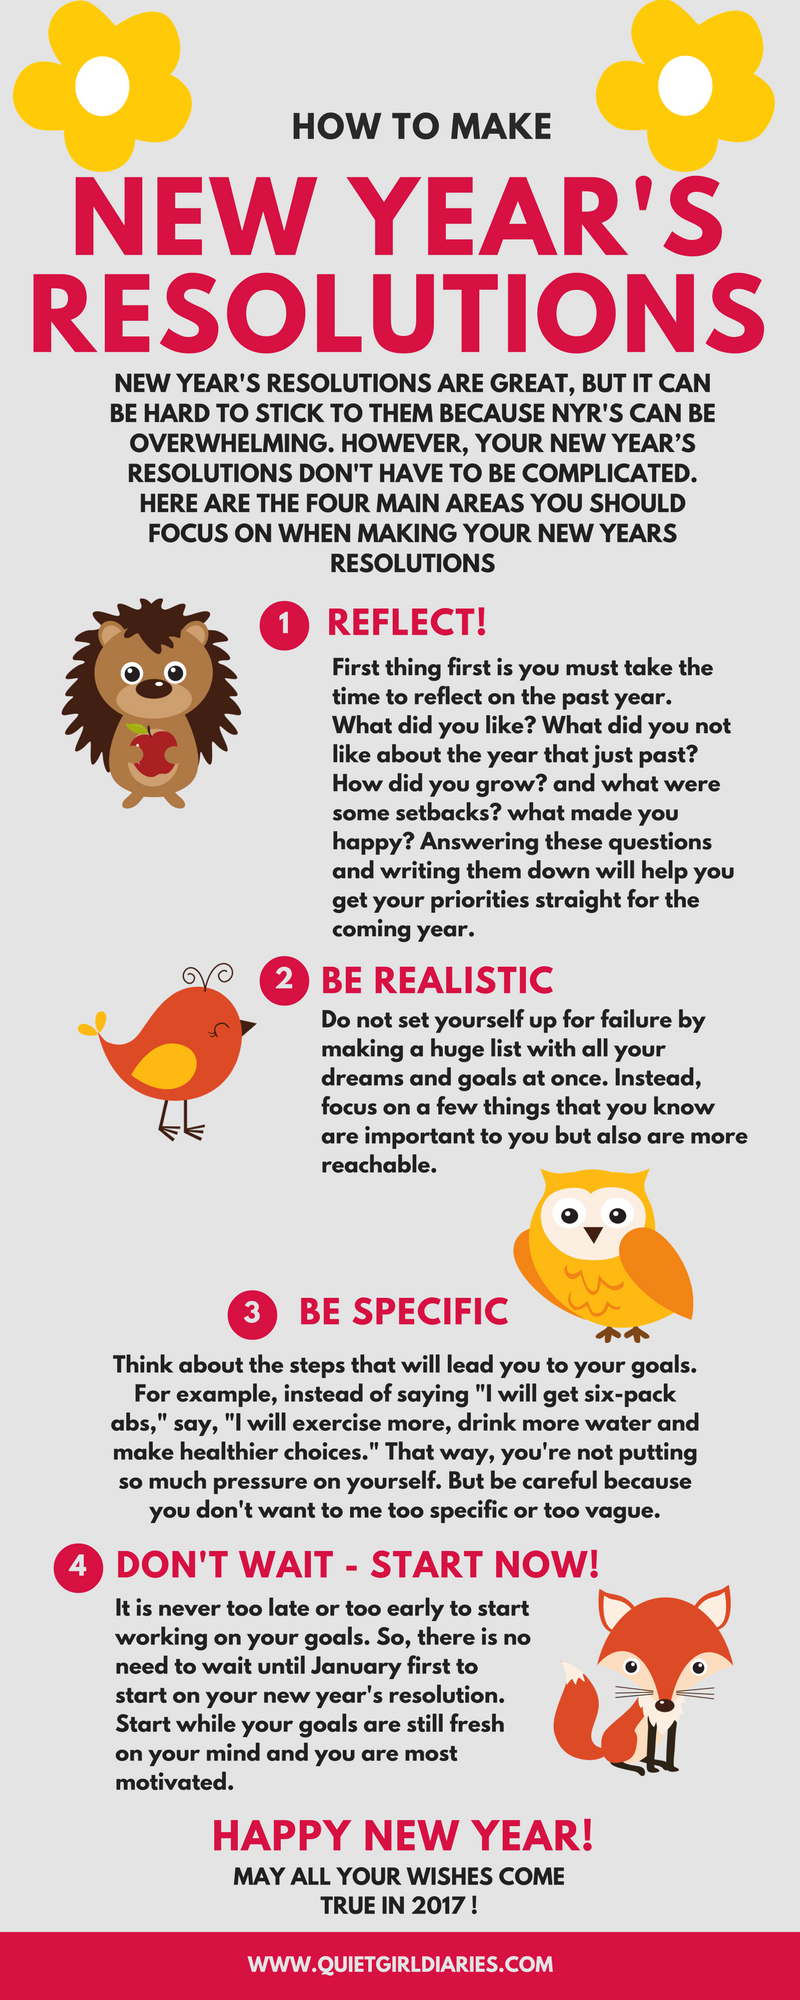 your new years resolutions doesnt have to be stressful this infographic will teach you four simple steps to making your new years resolutions and stick